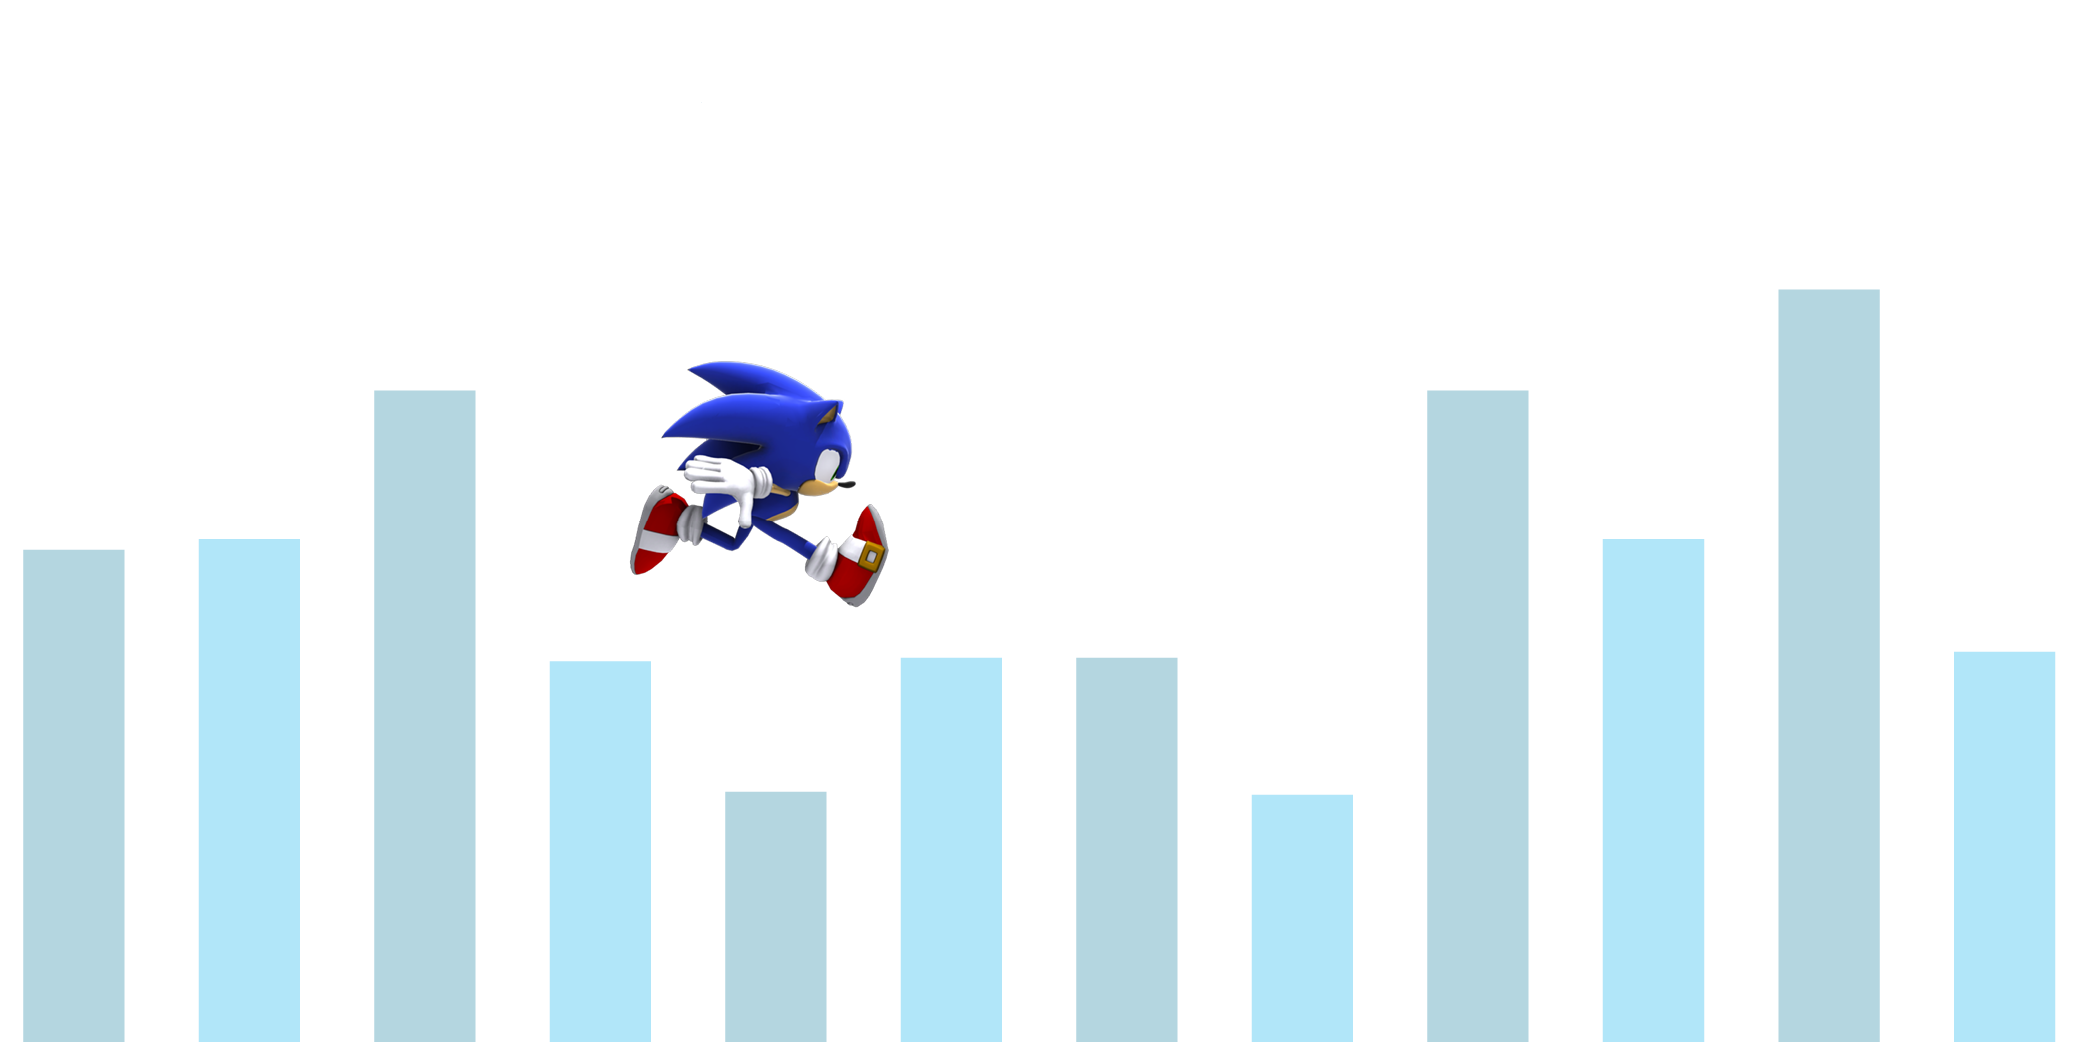 3 reasons why Sonic the Hedgehog is the king of marketing | Koobr